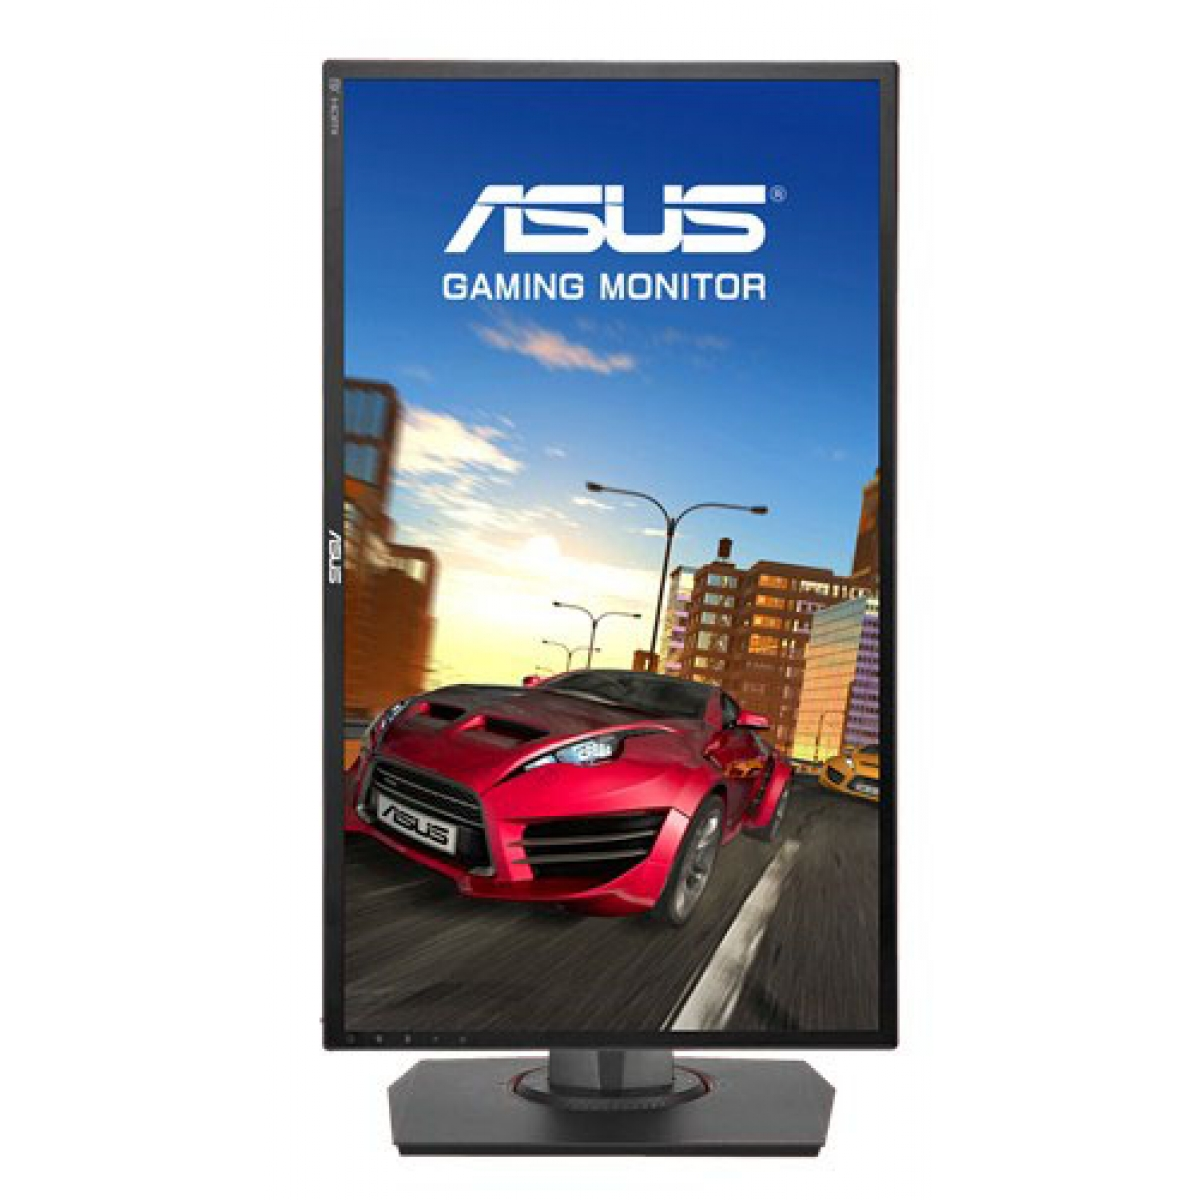 Monitor Gamer Asus 24 Pol, Full HD, 144Hz, 1ms, Adaptive-Sync, Som Integrado, MG248Q